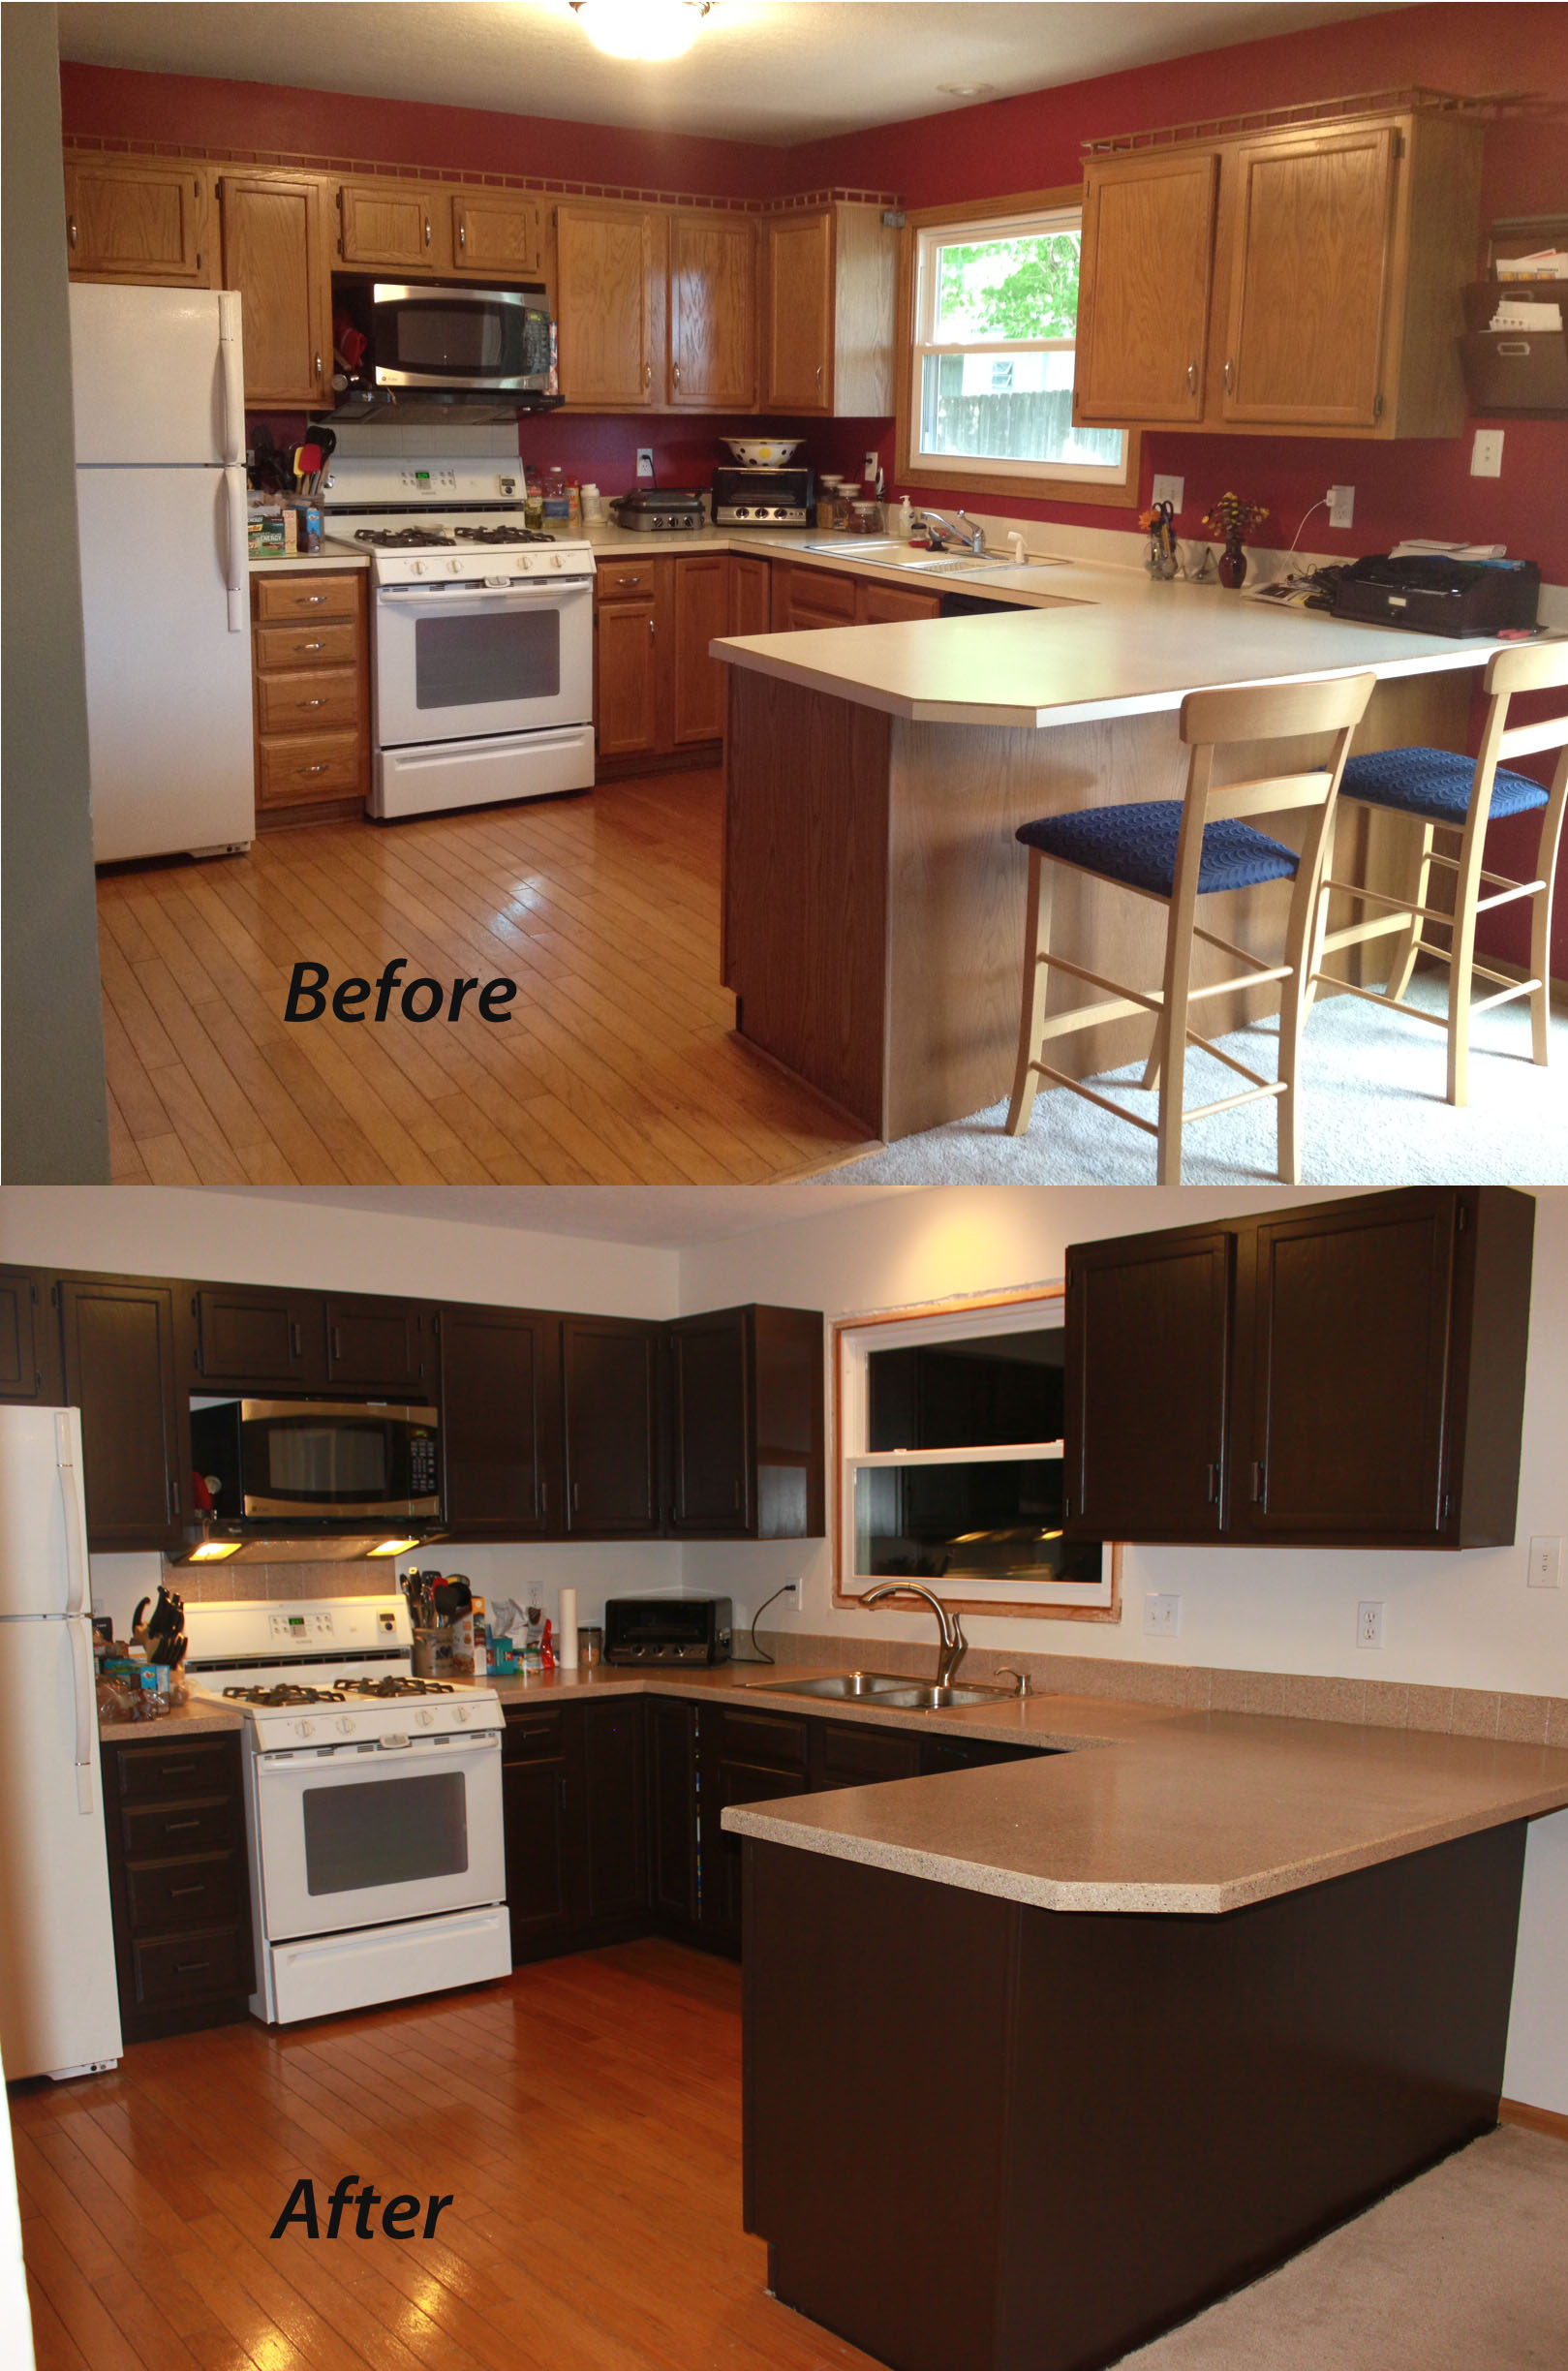 Painting Kitchen Cabinets Sometimes Homemade - What's the best paint to use for kitchen cabinets